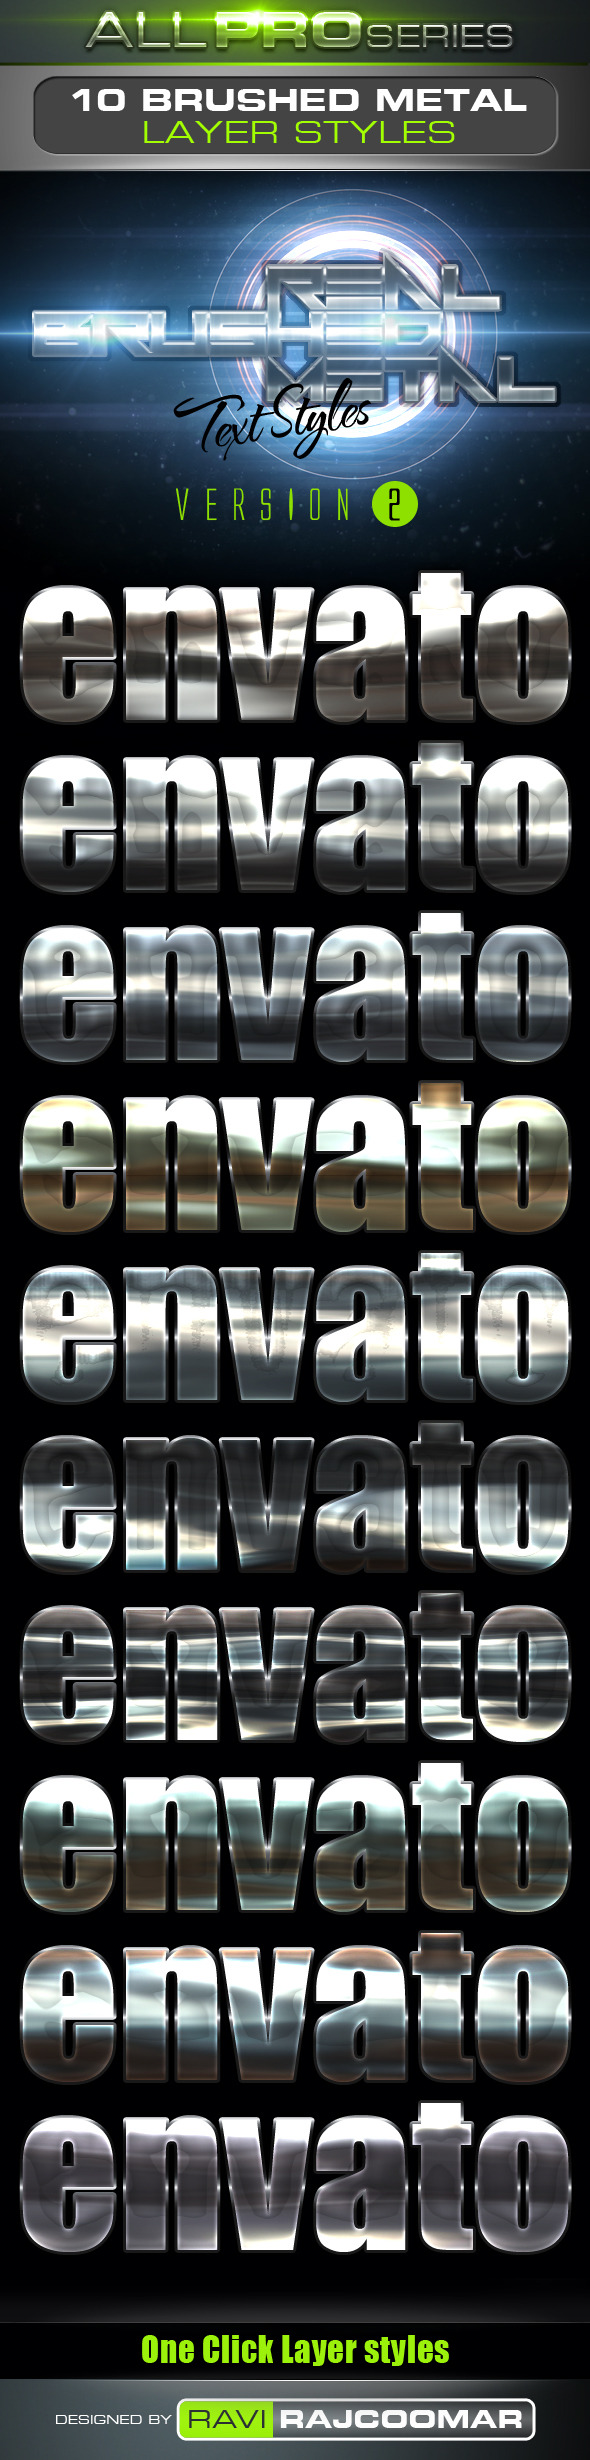 Real Brushed Metal Text Styles Vol.2 - Styles Photoshop